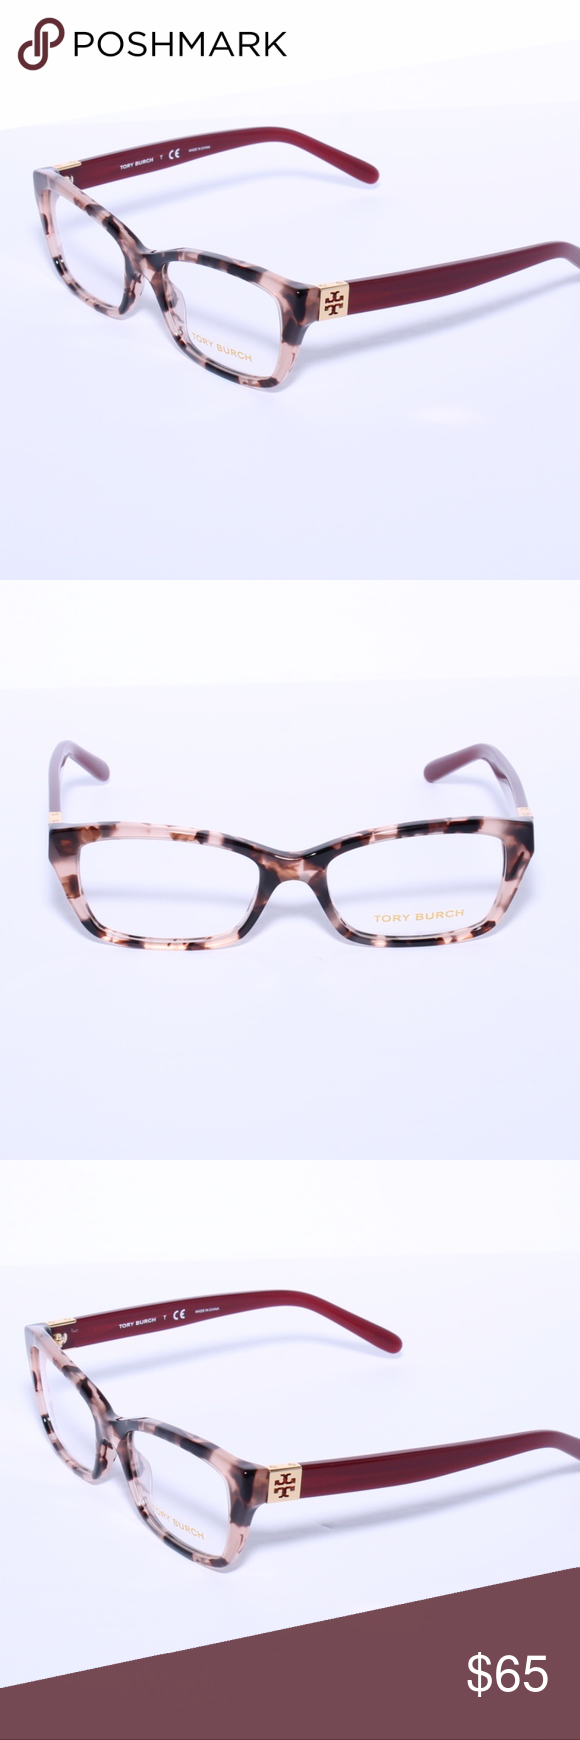 ee0f28e3cc3c Tory Burch TY 2049 Eyeglasses Tortoise MilkyCaber Brand new 100% authentic TORY  BURCH Eyeglasses TY2049 1363 Blush Tortoise Cabernet 51MM Comes with  Generic ...